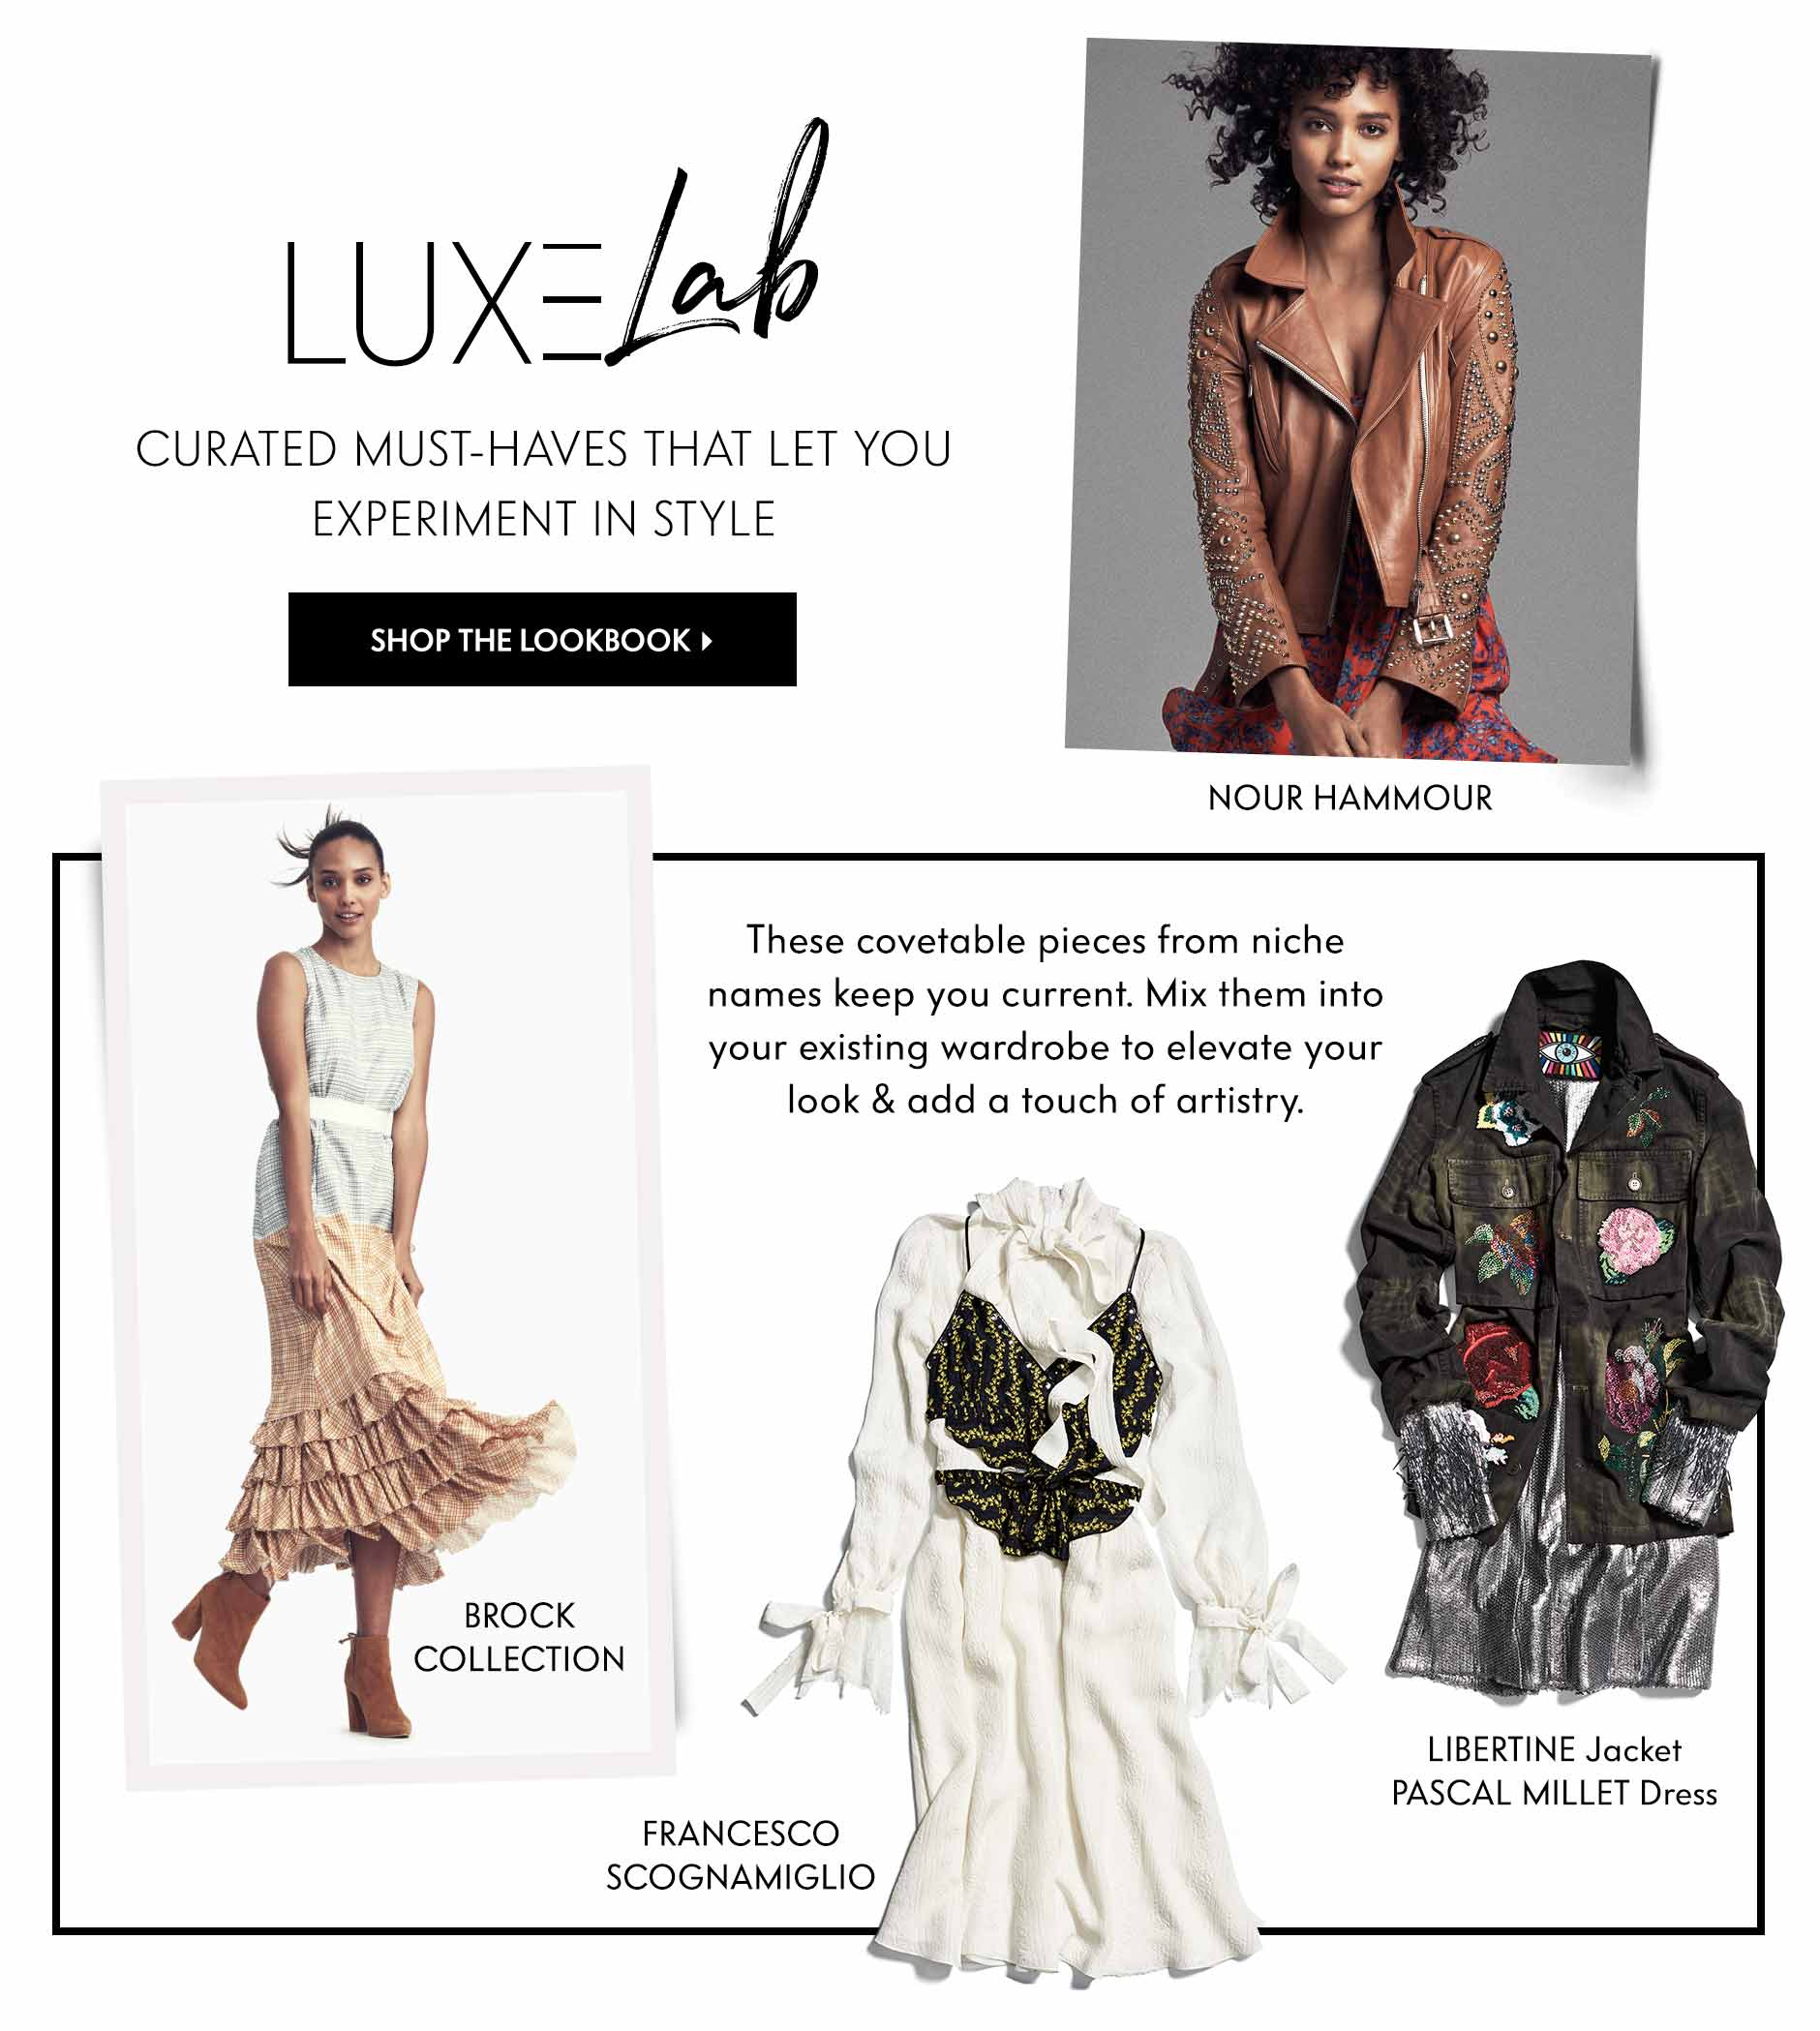 Luxe Lab: Curated must-haves that let you experiment in style - These covetable pieces from niche names keep you current. Mix them into your existing wardrobe to elevate your look & add a touch of artistry.